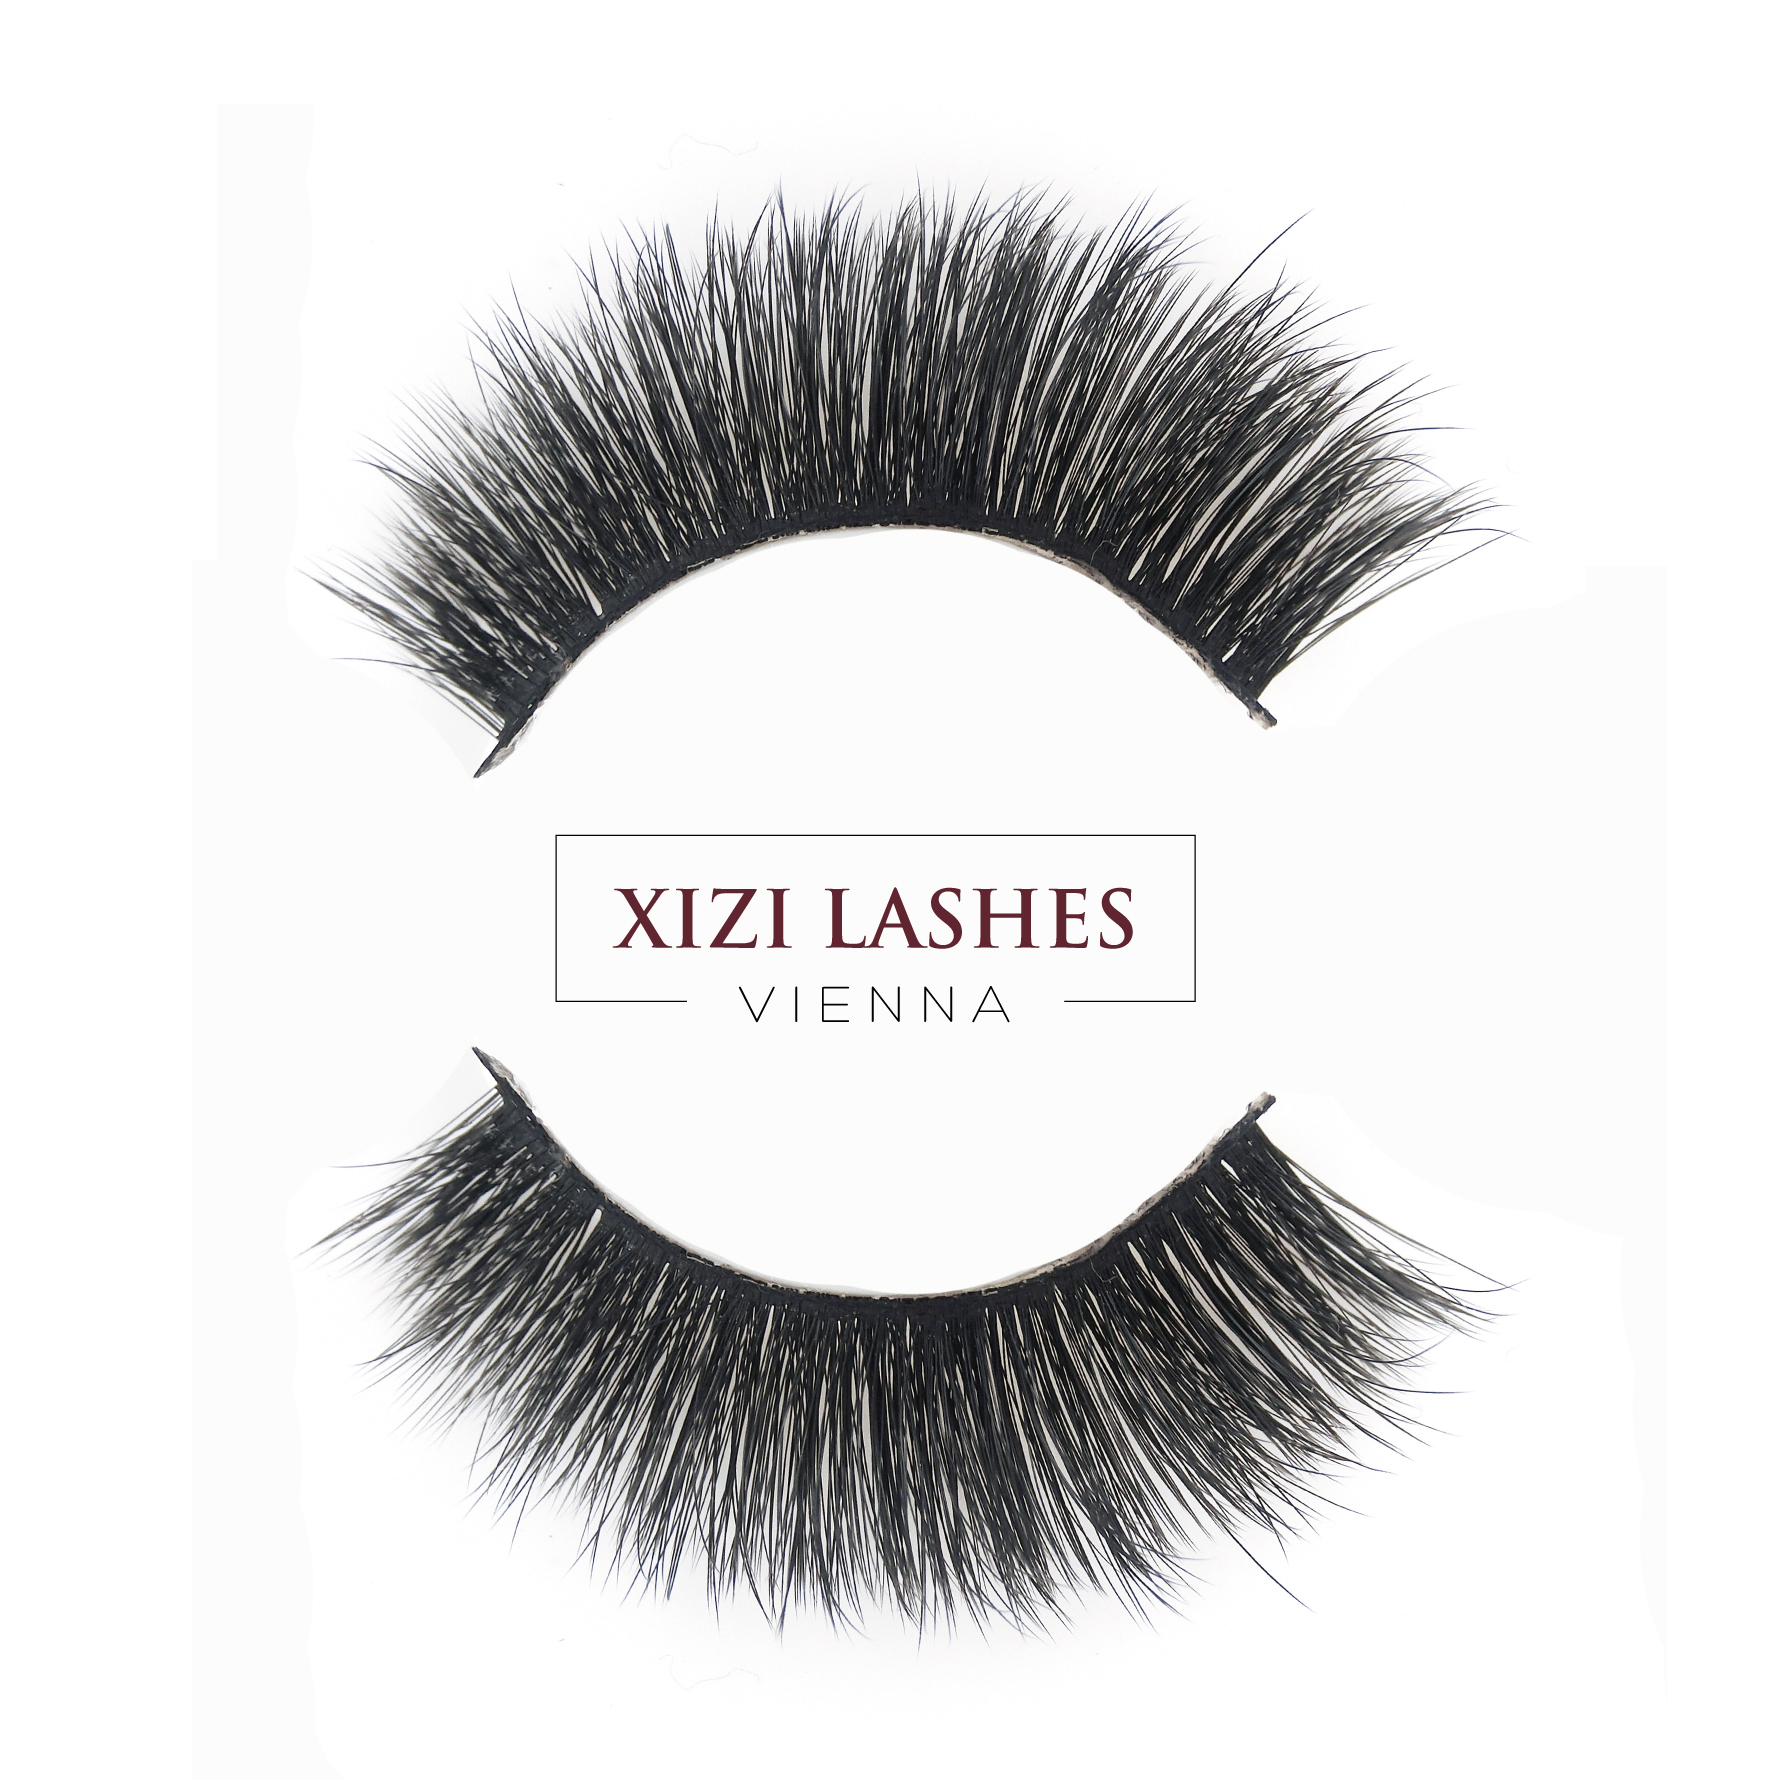 2f196191714 ... Extensions; Wholesale Mink Lashes Natural Lookingbepholan Naomi;  Wholesale False Eyelashes Supplier 3d Faux Mink Eyelashes Xizi Lashes ...